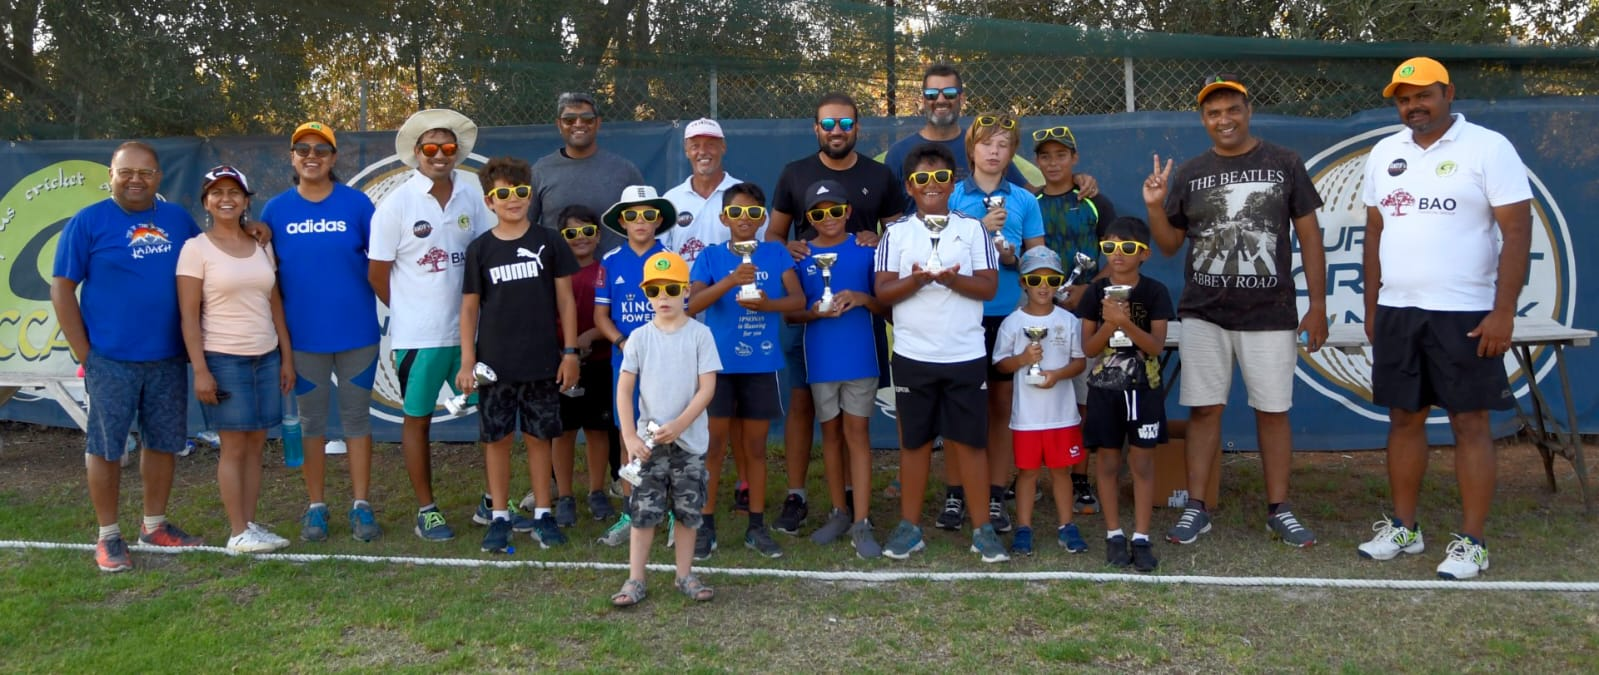 Report on 2021 Summer Youth Cricket